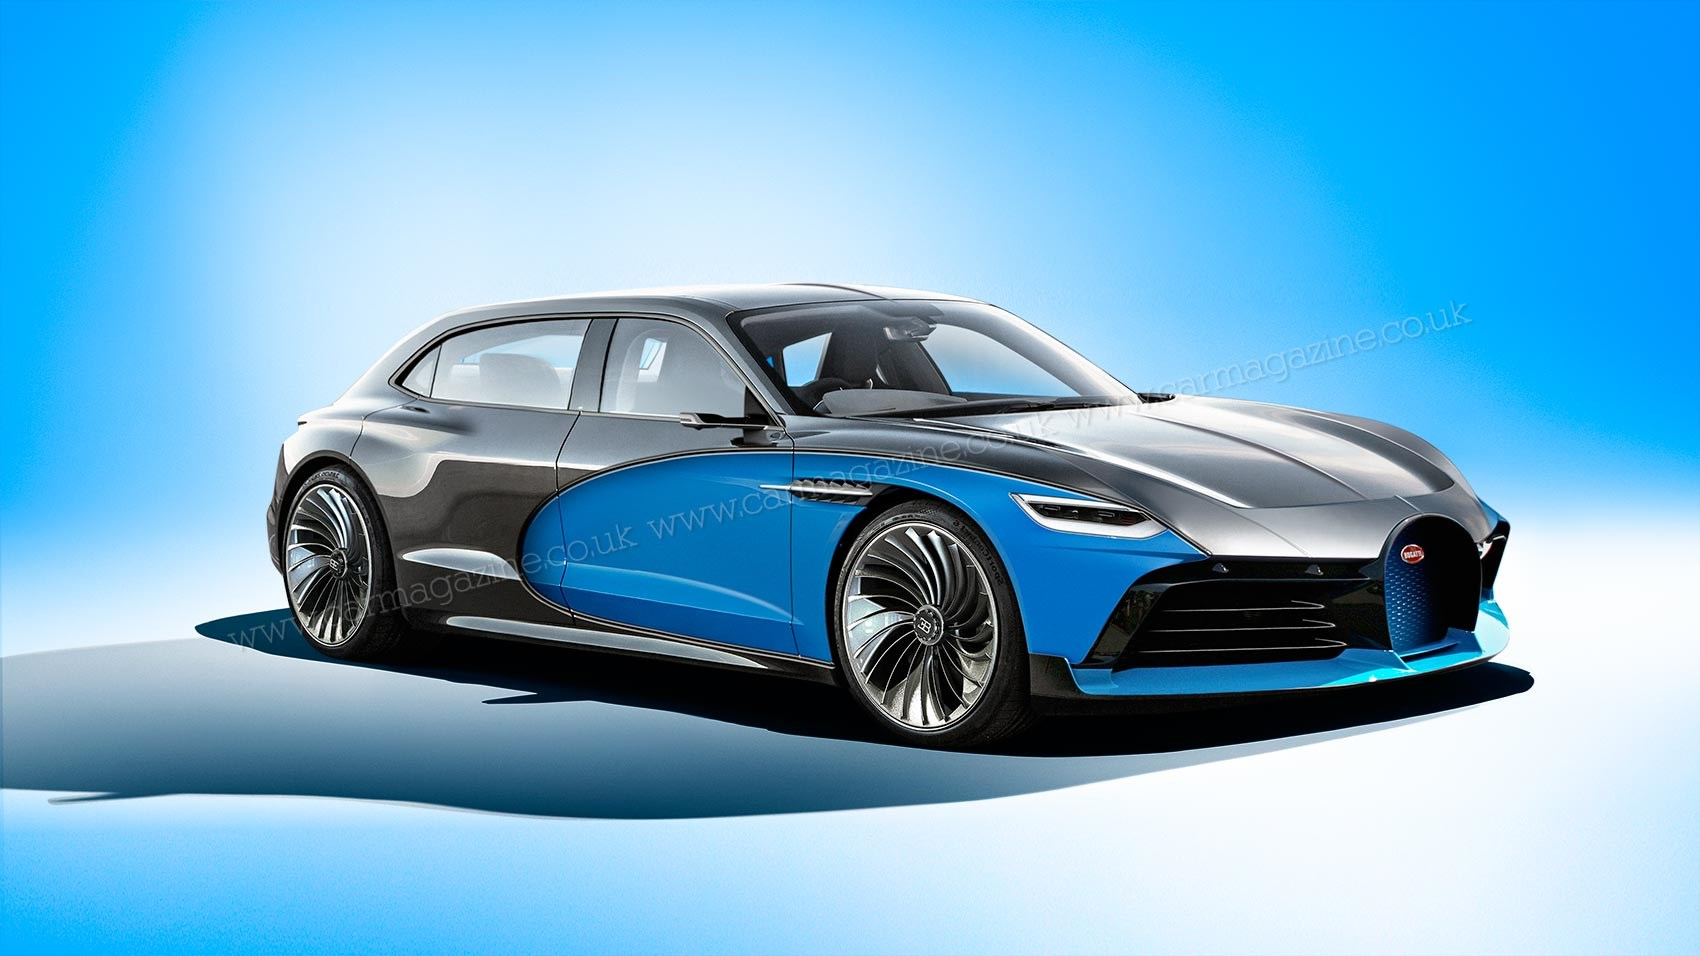 Back For 2023 As An Electric Hyper-limo